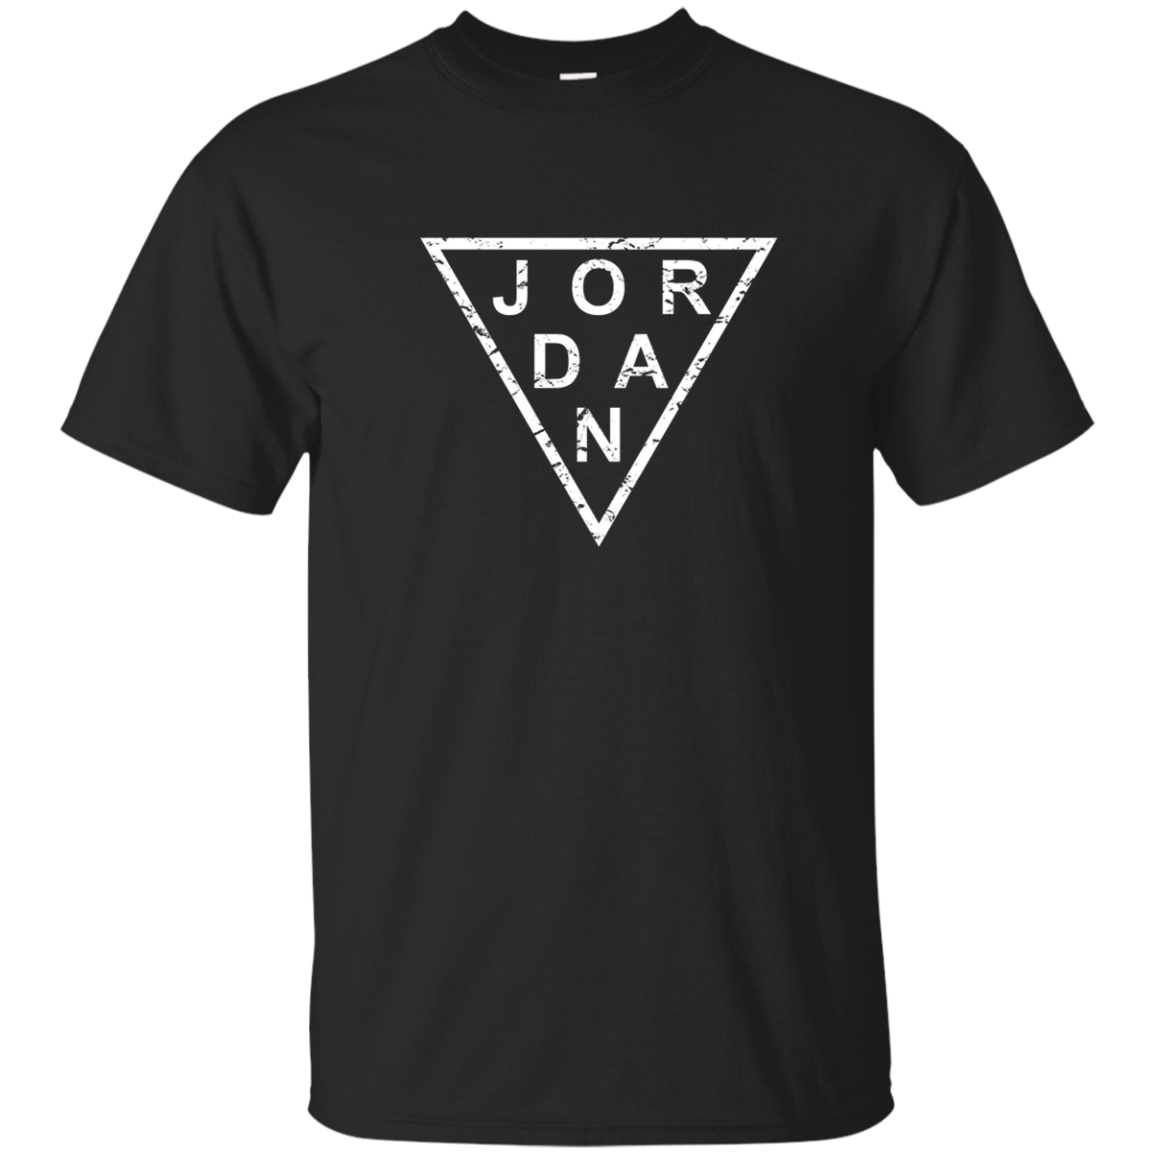 Stylish Jordan T-Shirt